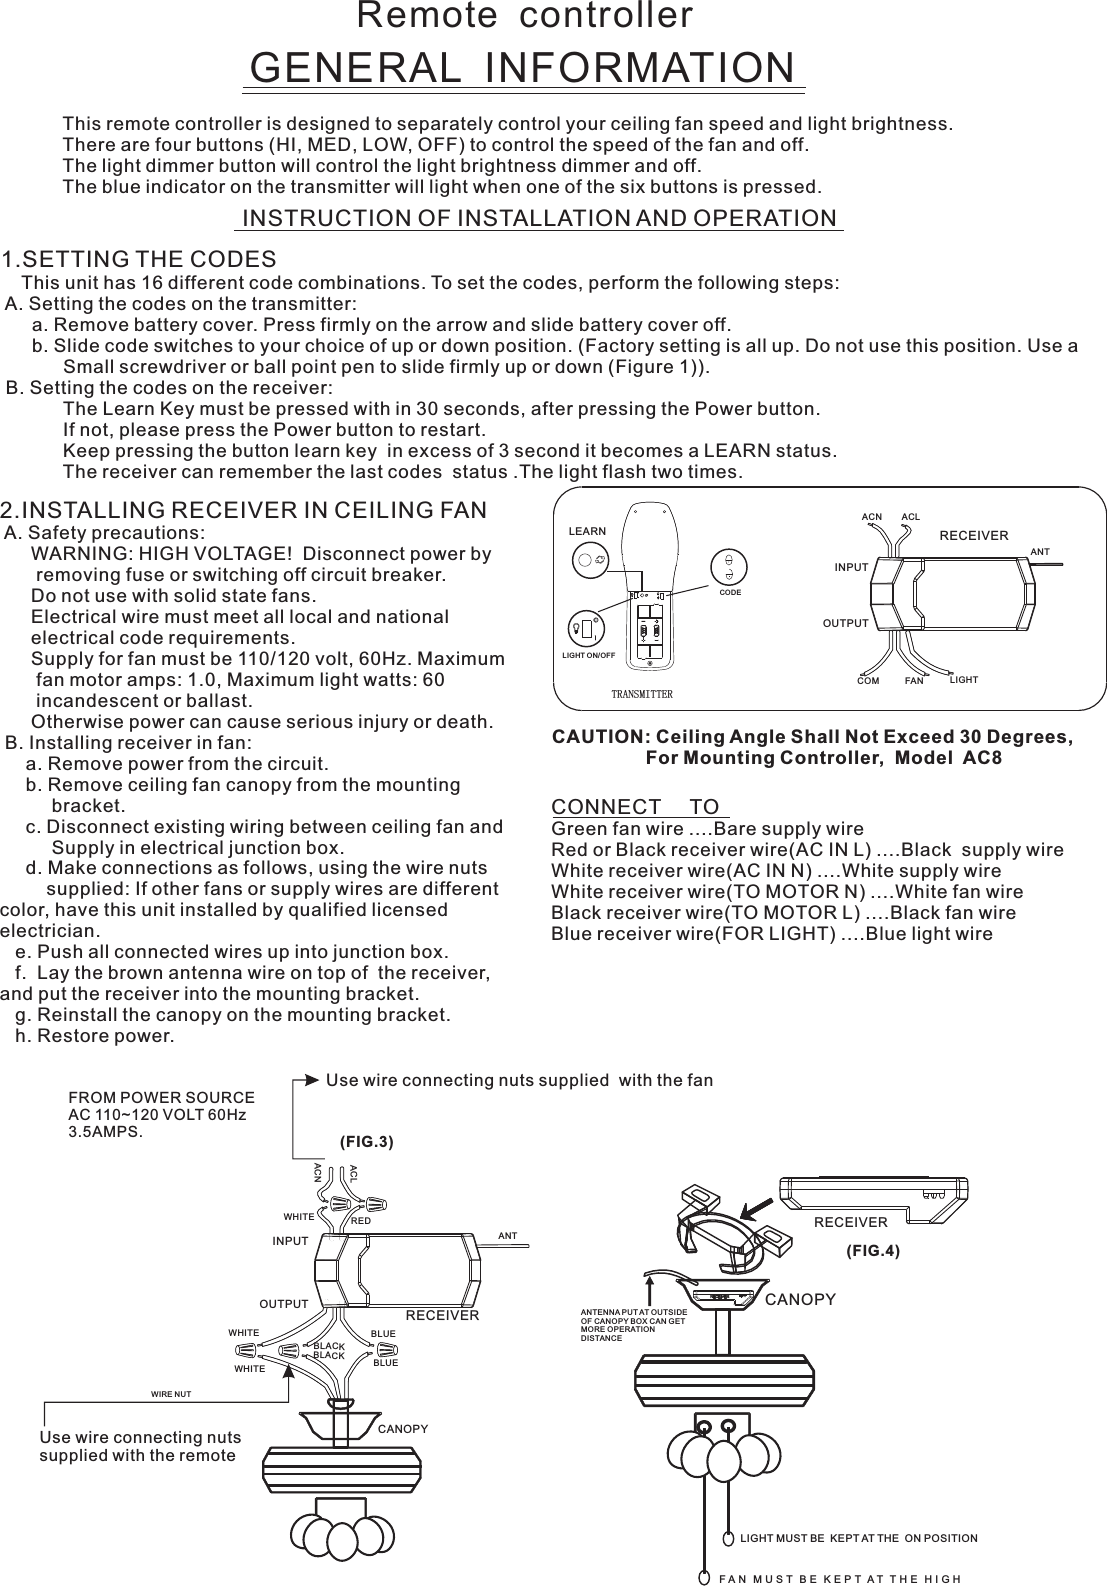 Carewell Electric Technology Fan61t3sp1 Remote Control User Manual Ac8 61t 3sp1